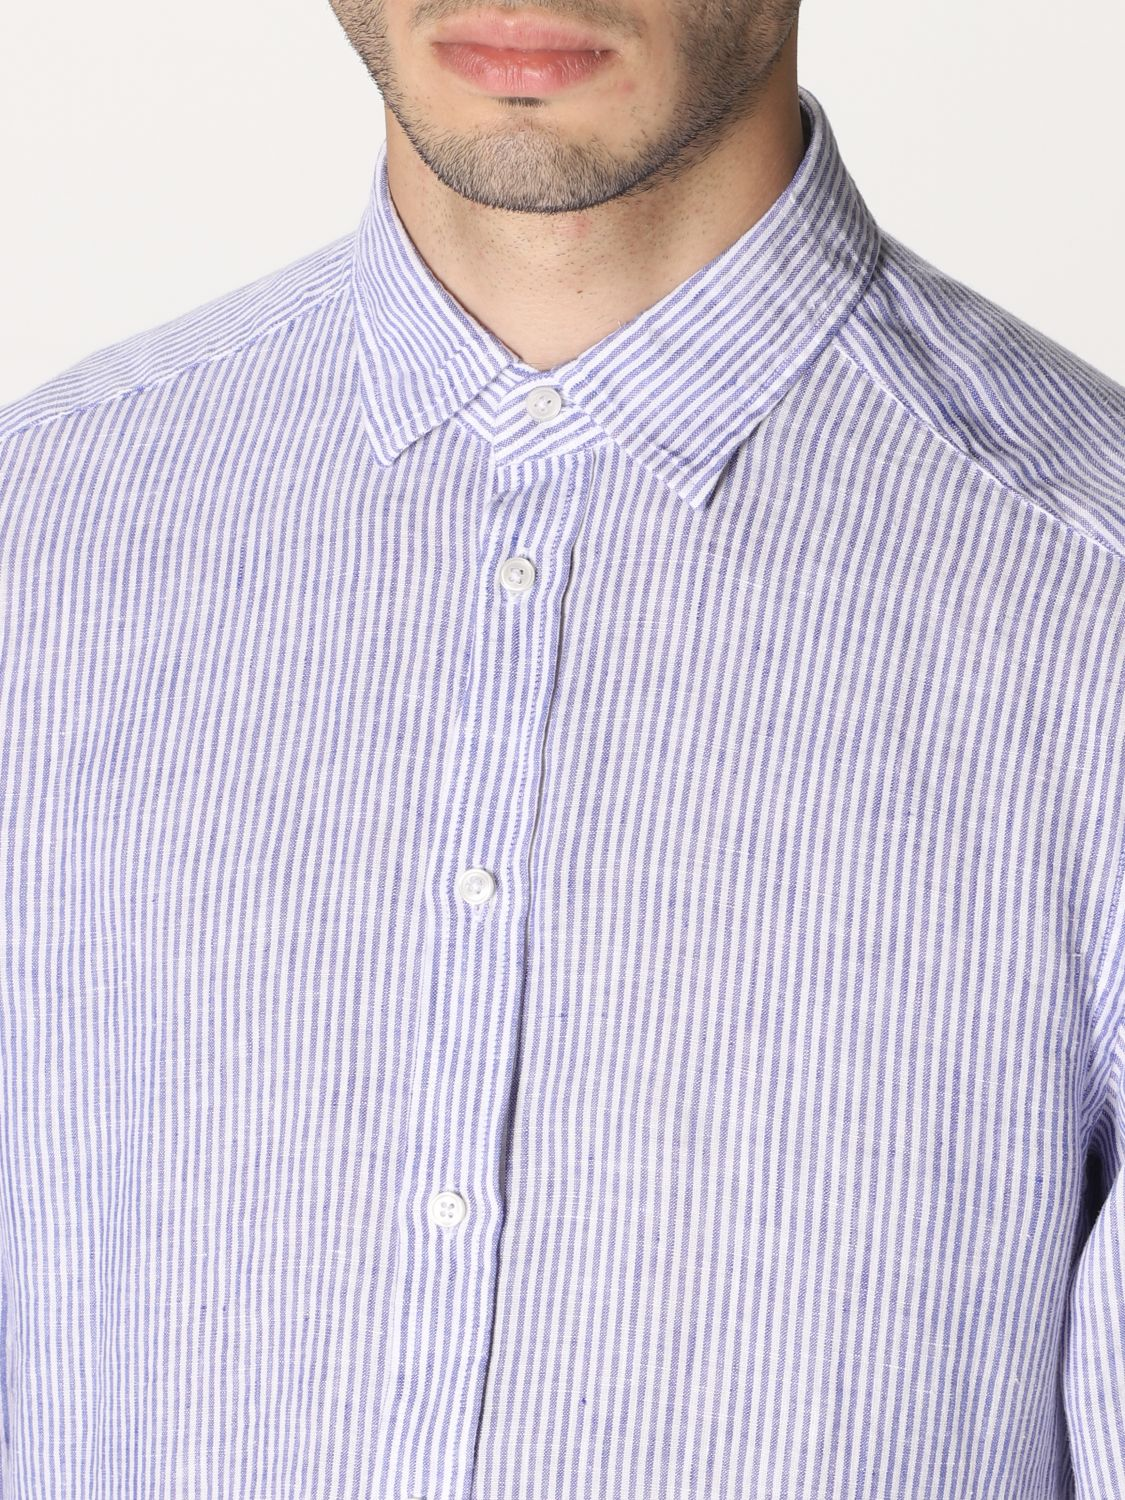 Chemise An American Tradition: Chemise homme Bd Baggies rayé 3